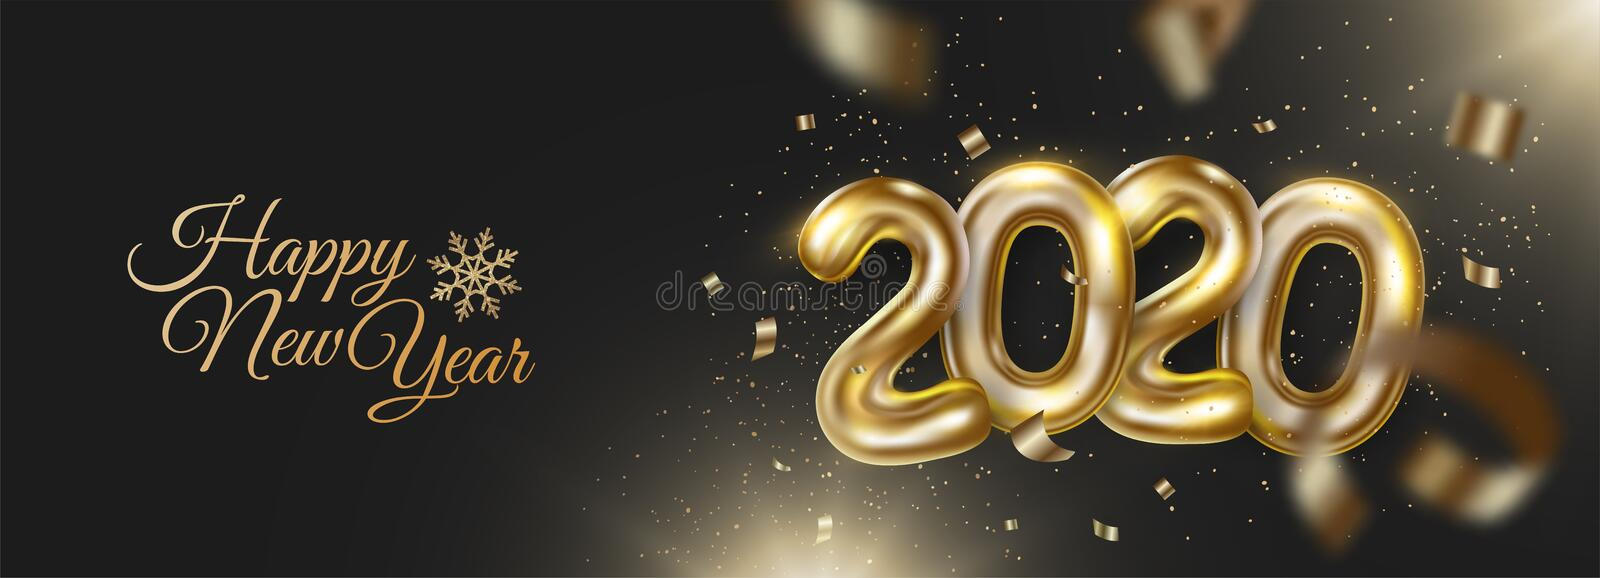 Happy new 2020 year banner with realistic golden numbers and confetti, tinsel. Festive decoration on dark background. royalty free stock images